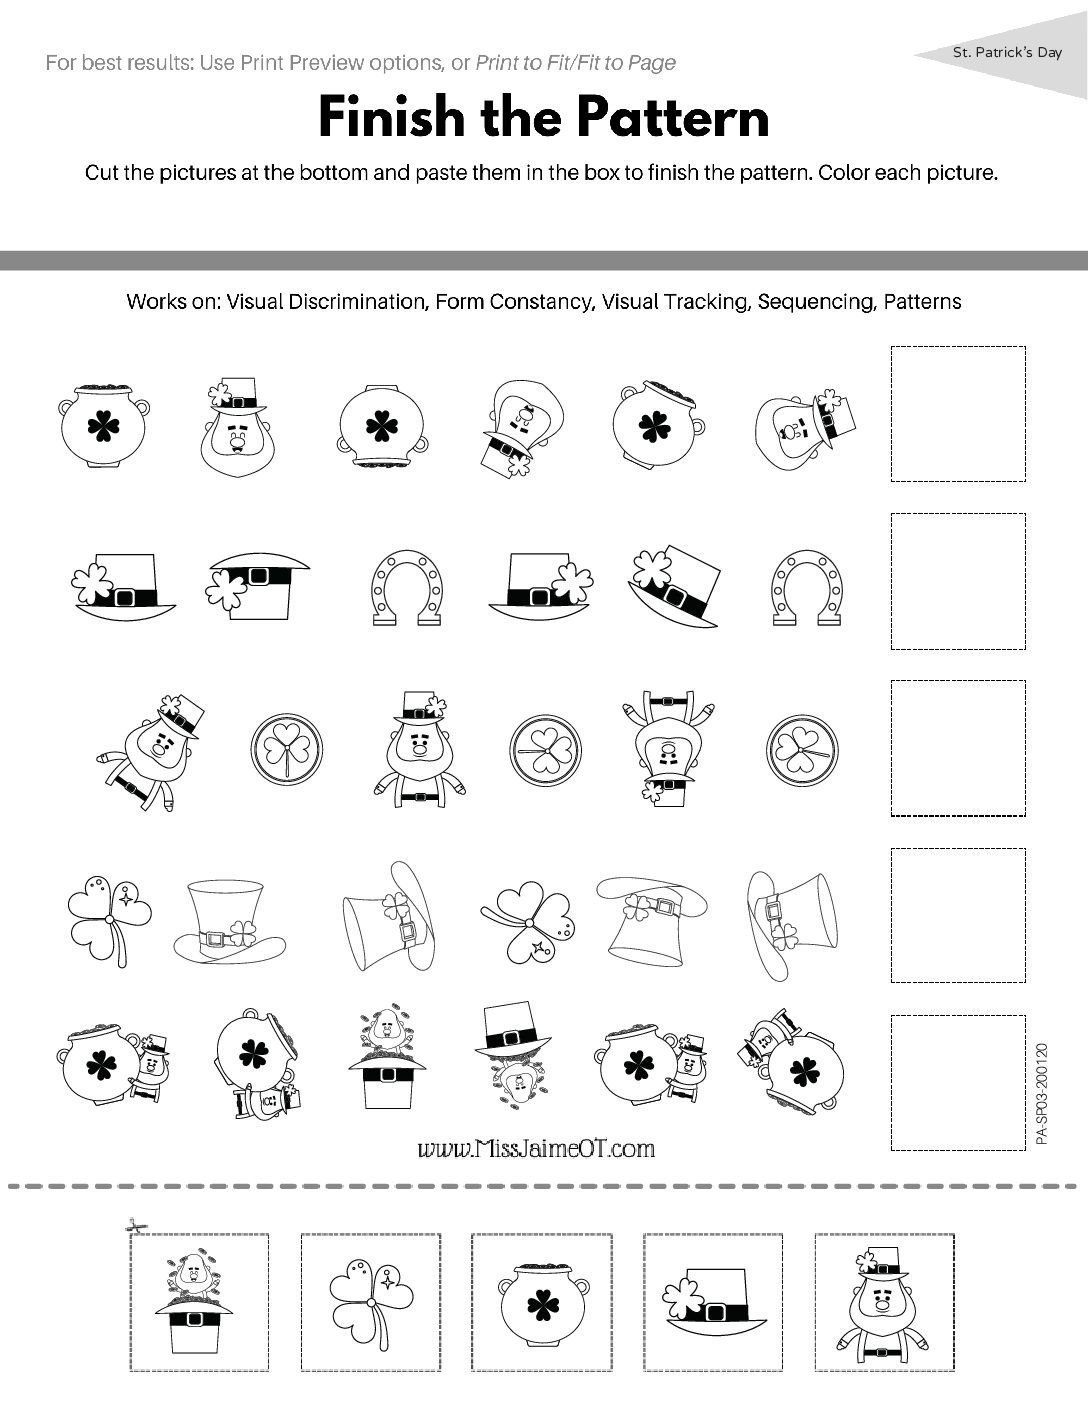 Spatial Relations Worksheets Functional Visual Perception Digital Workbook